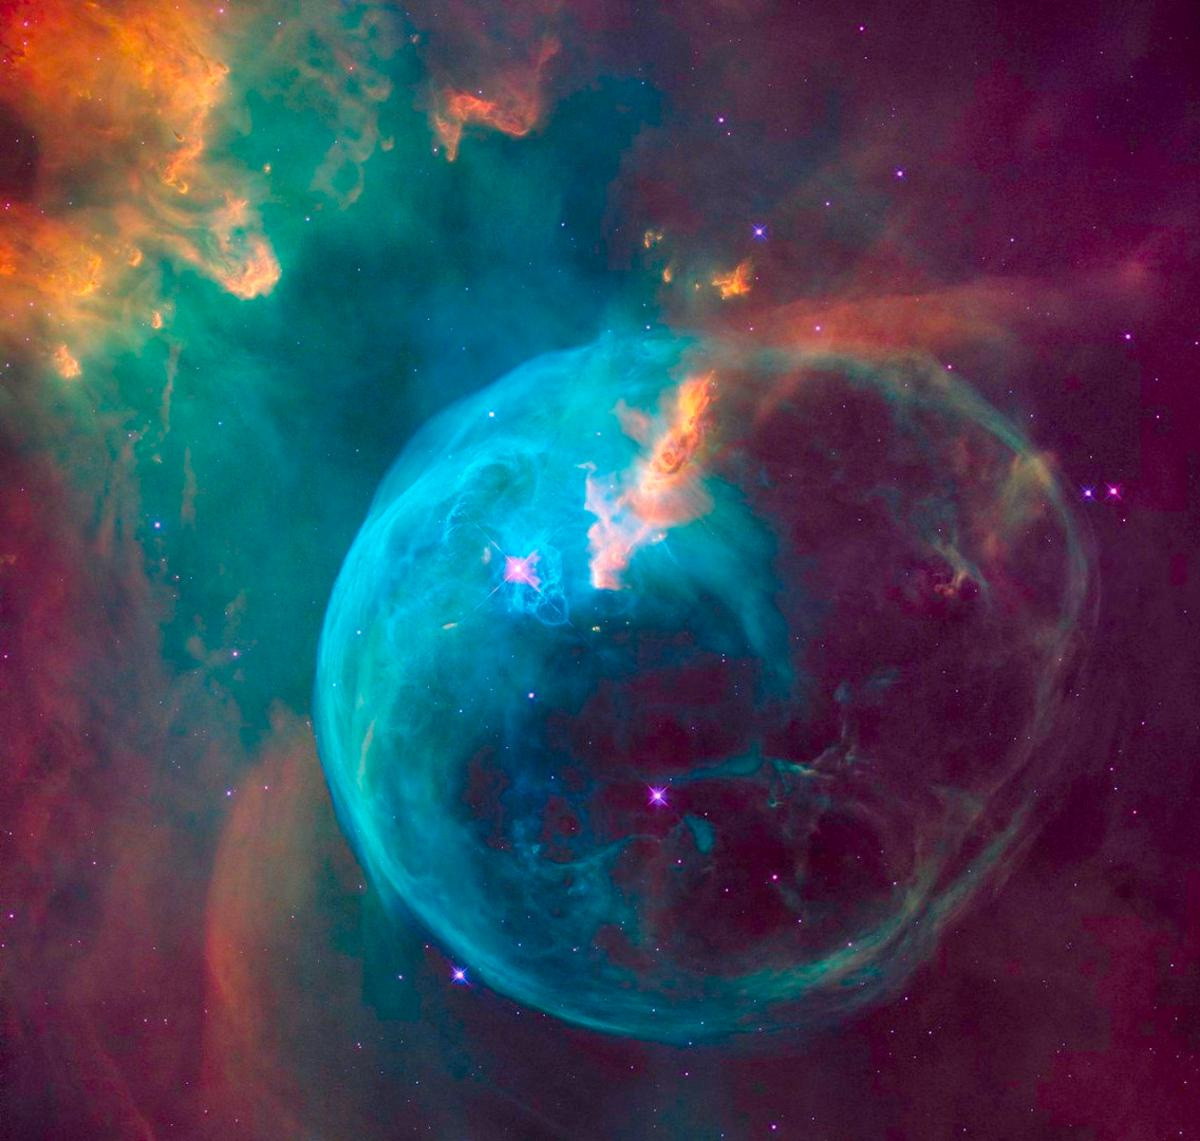 Hubble imaged the nebula in the visible light spectrum